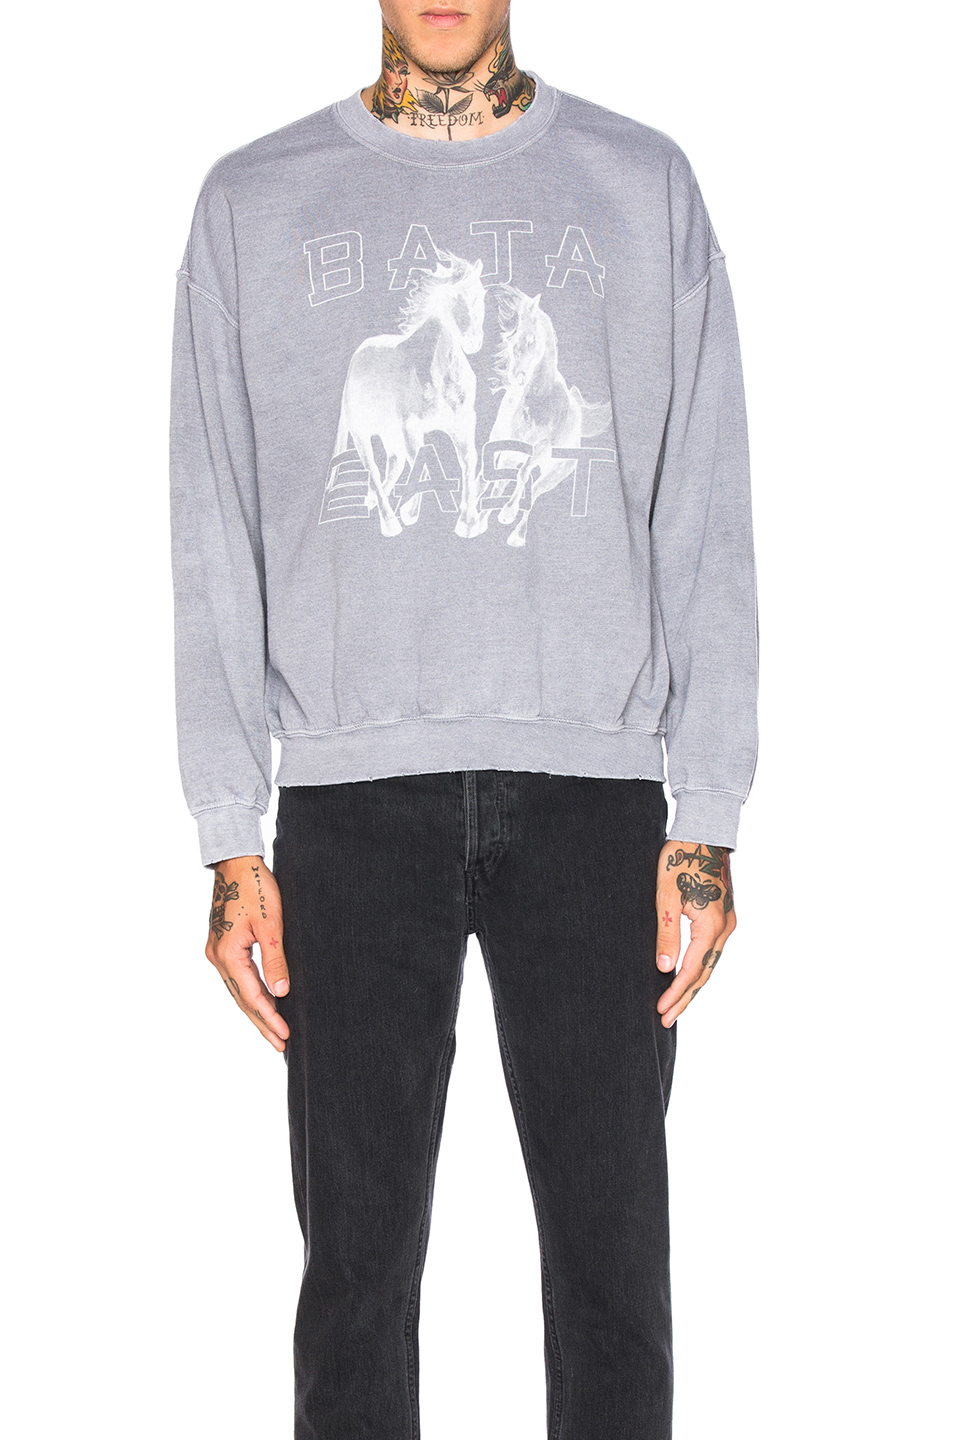 Baja East Fleece Sweatshirt in Gray